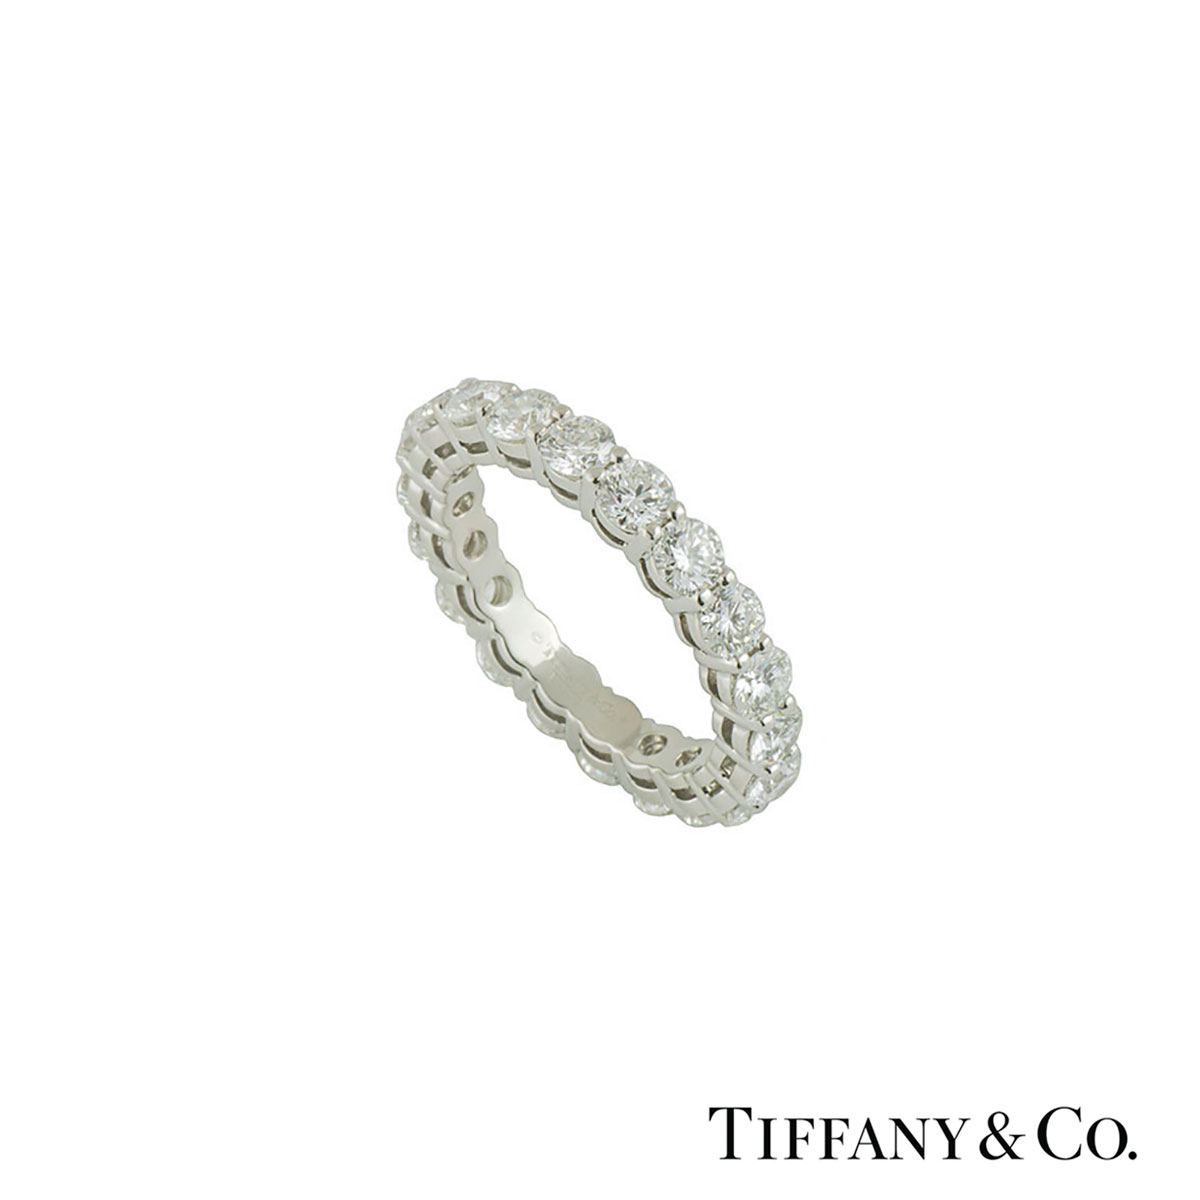 Tiffany & Co. Platinum Diamond Embrace Ring 3.18ct F+/VS+